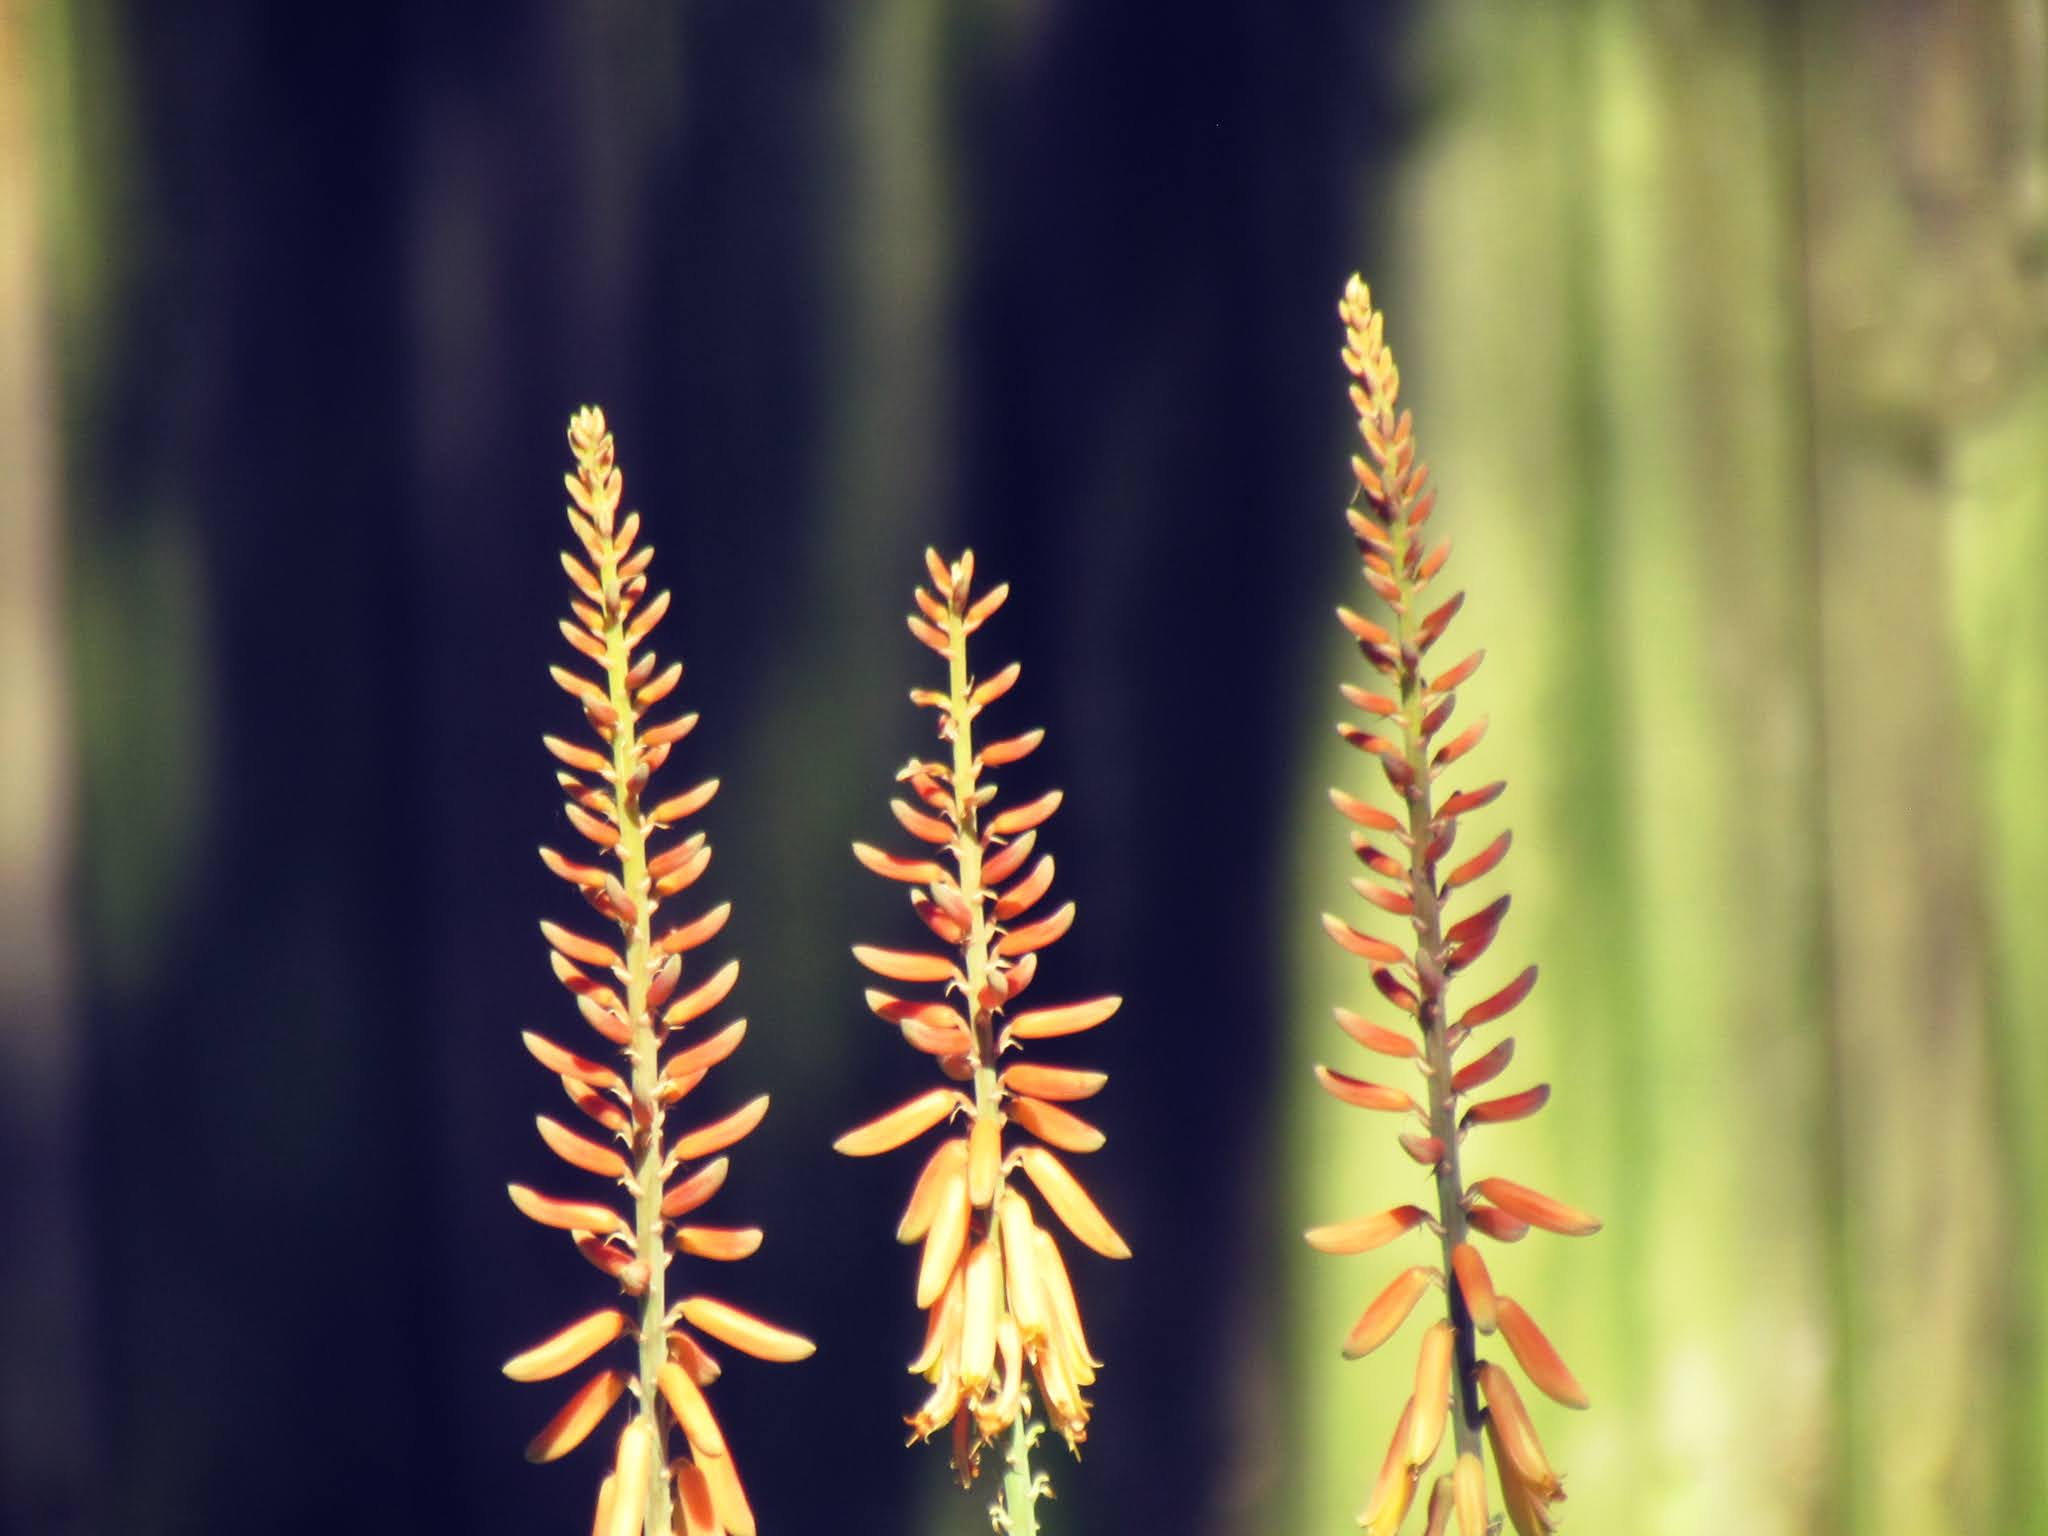 Weeds in a picture, pregnancy plants in Florida, invasive plant species, native Florida plants